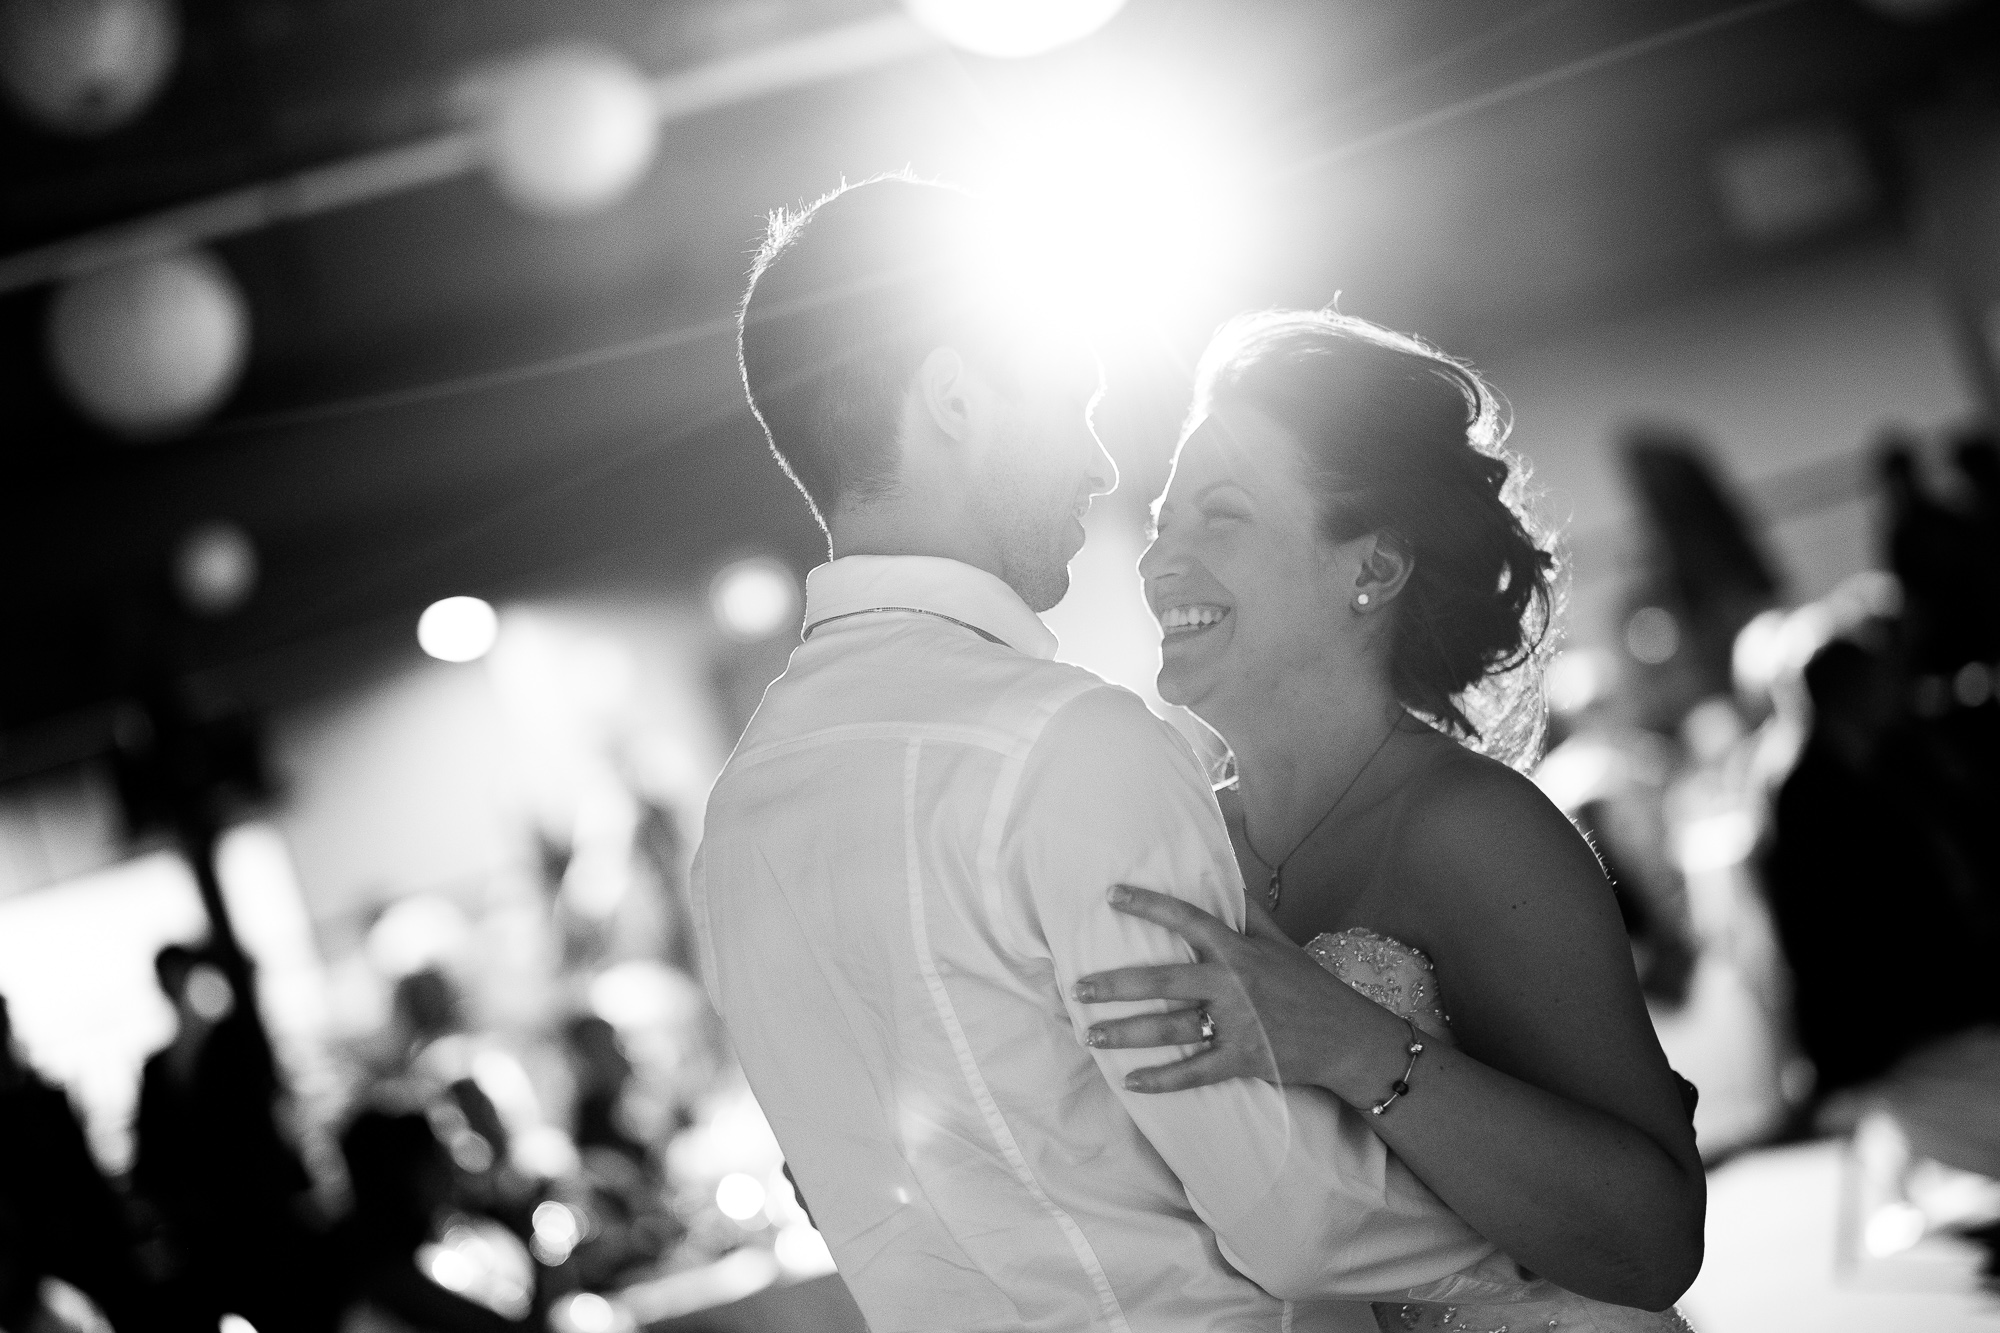 I love it when people are smiling in wedding photographs (I'll take happy crying as well) so obviously I love this picture from Kaylen and Roberts wedding this spring at Federation Hall in Waterloo.  You can see the joy on Kaylen's face as she enjoys their first dance during the wedding reception.